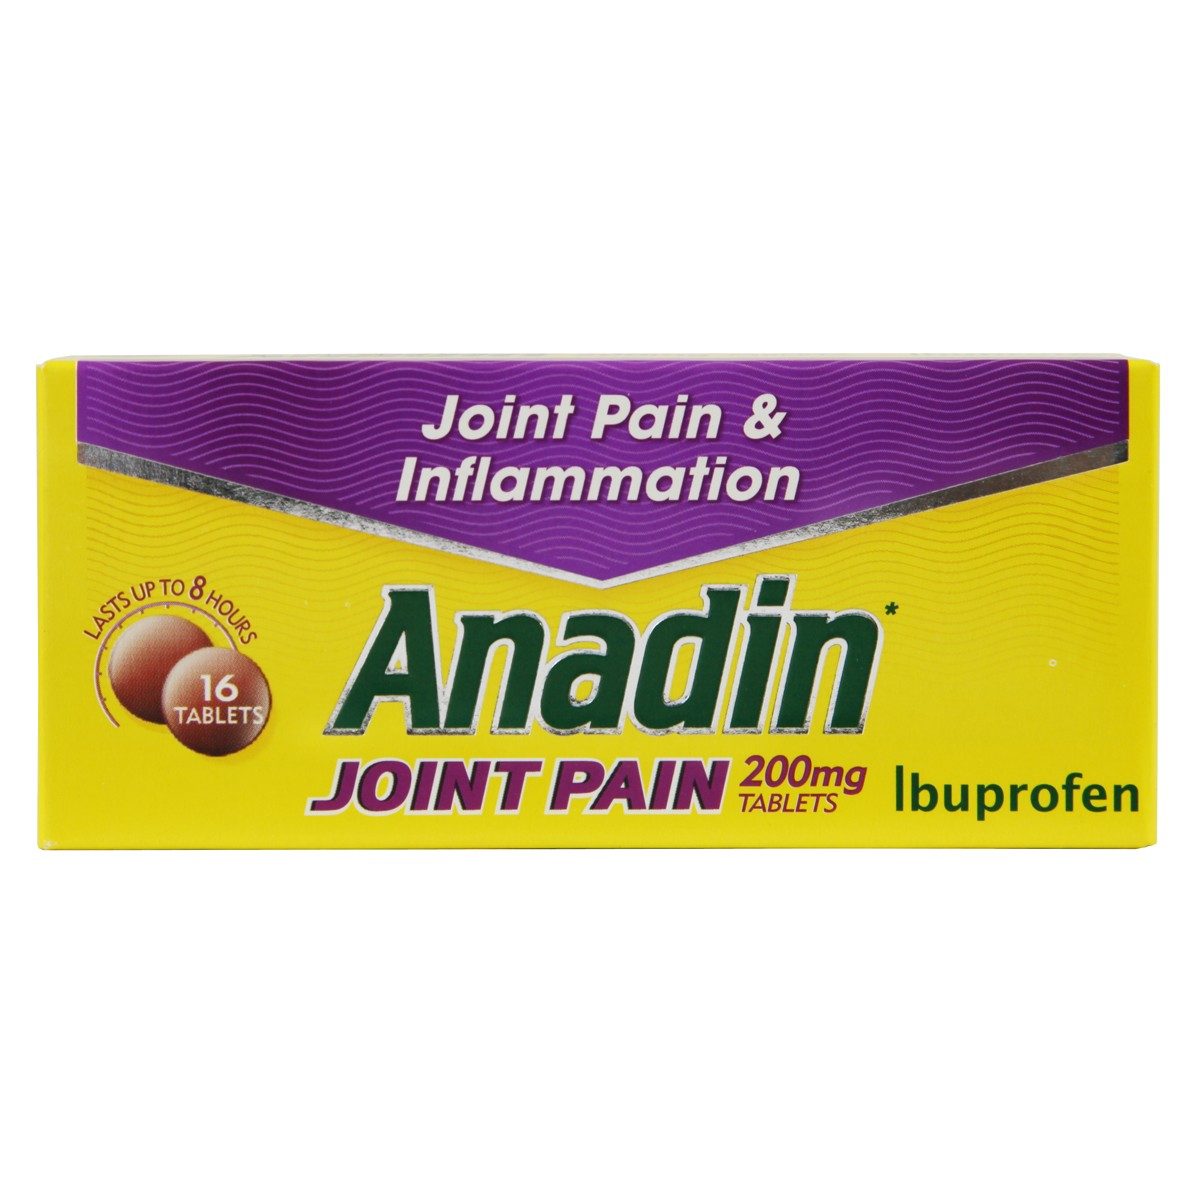 Anadin Joint Pain 200mg Tablets